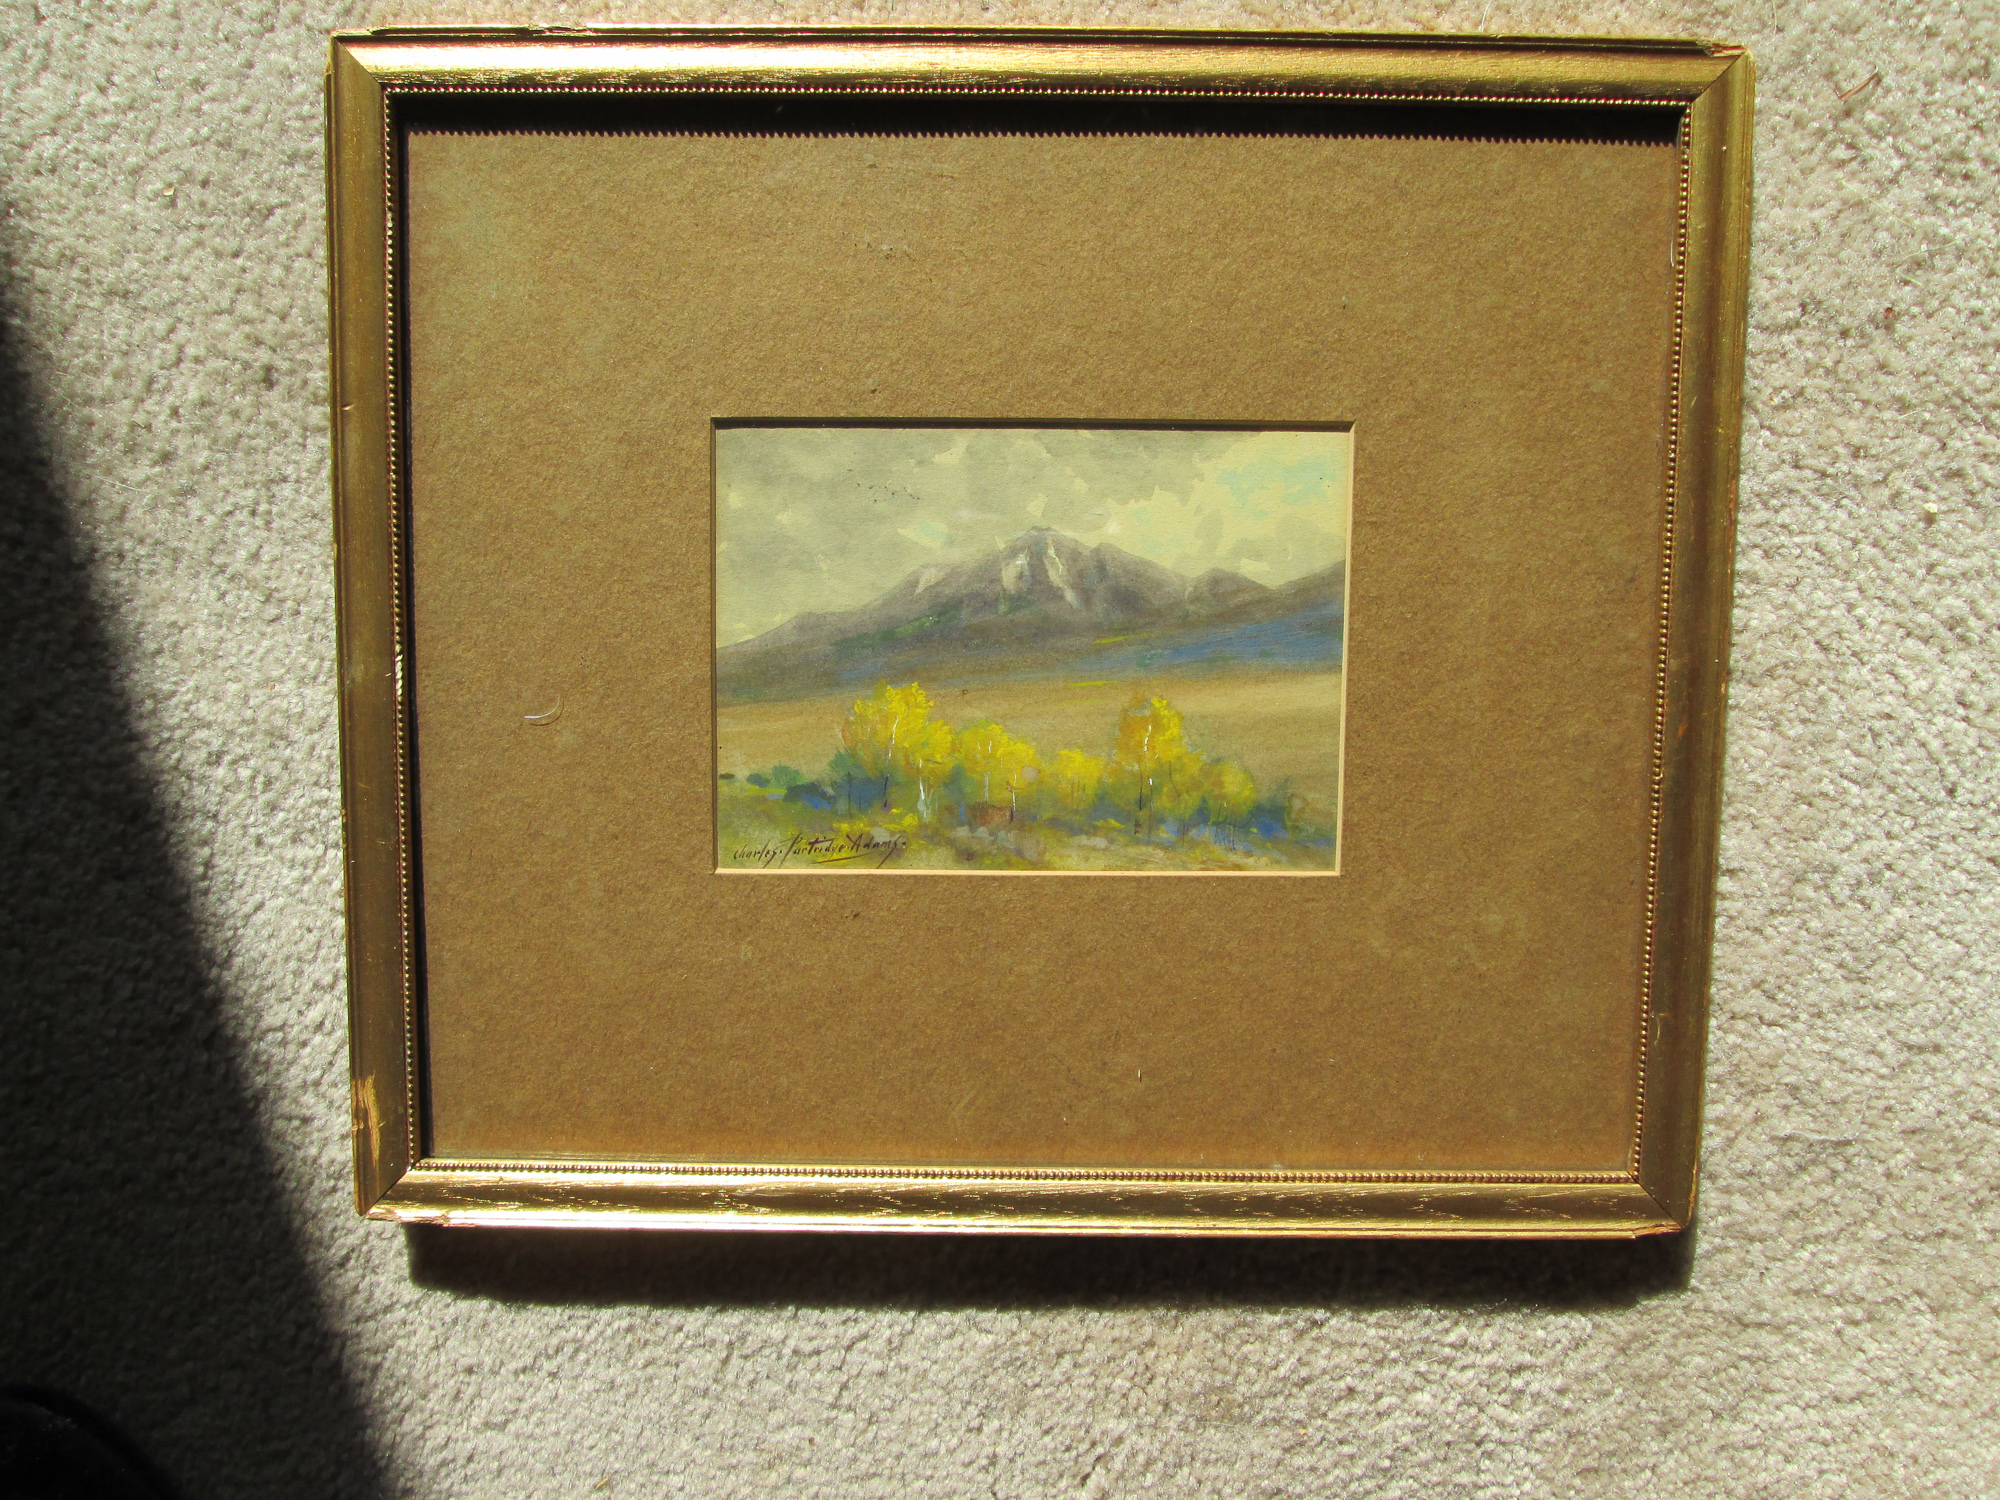 (Untitled) Mount Princeton, Colorado - Sold